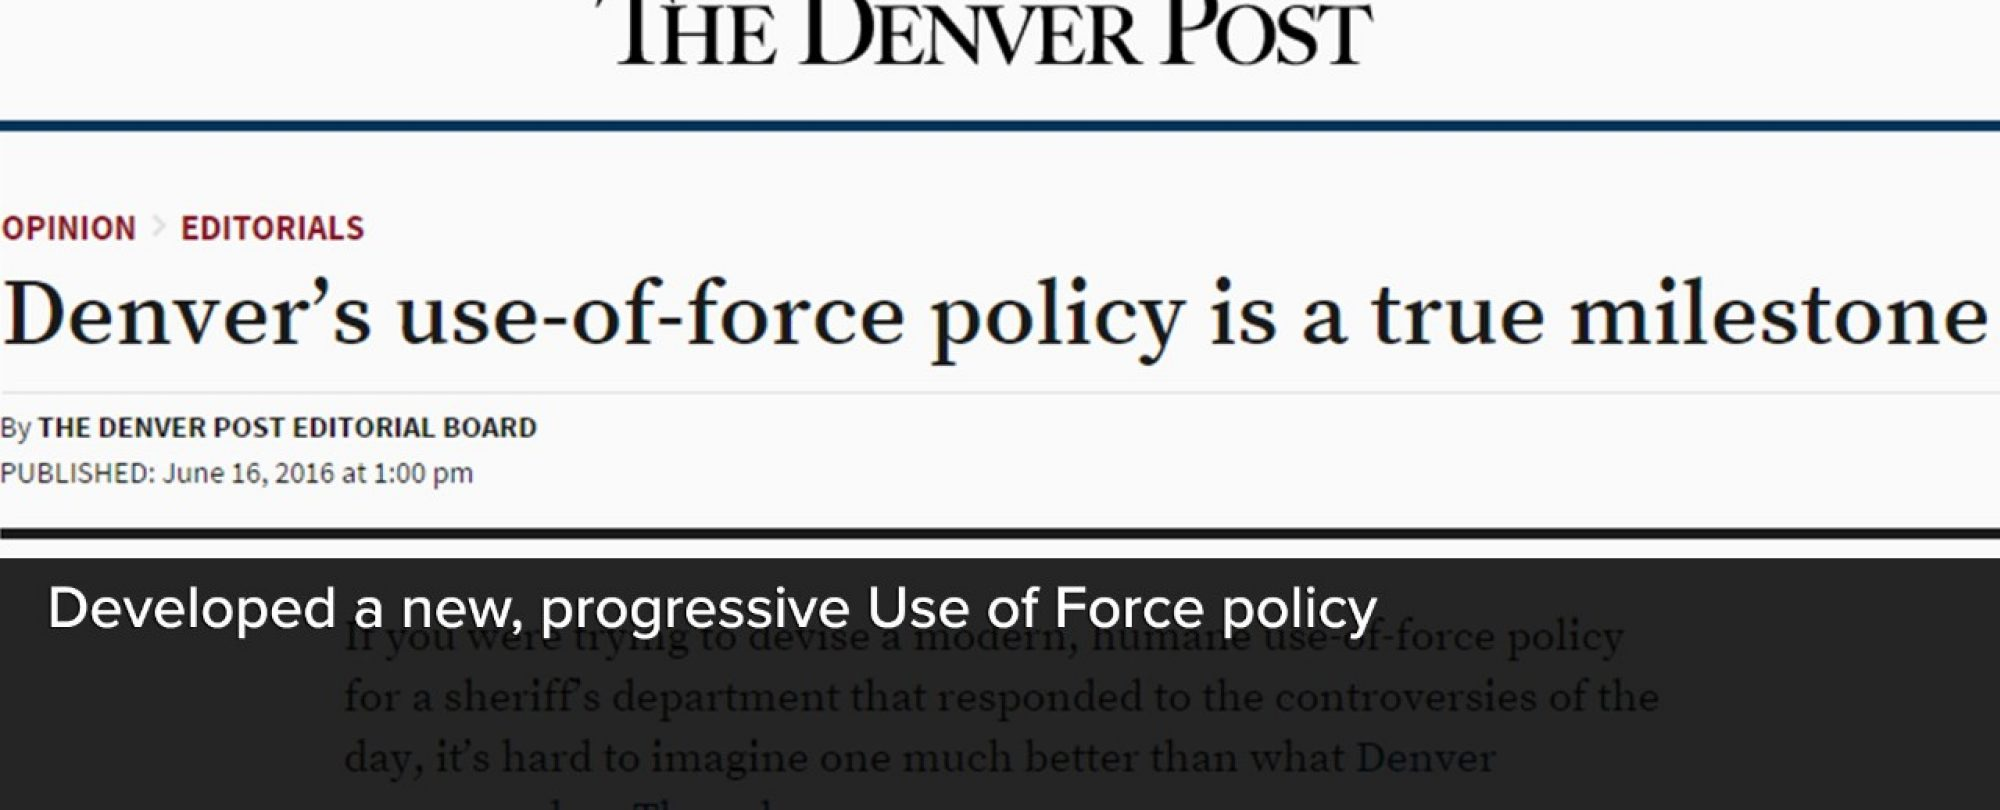 Digital snapshot of a Denver Post article highlighting the development of a new, progressive 'Use of Force' policy